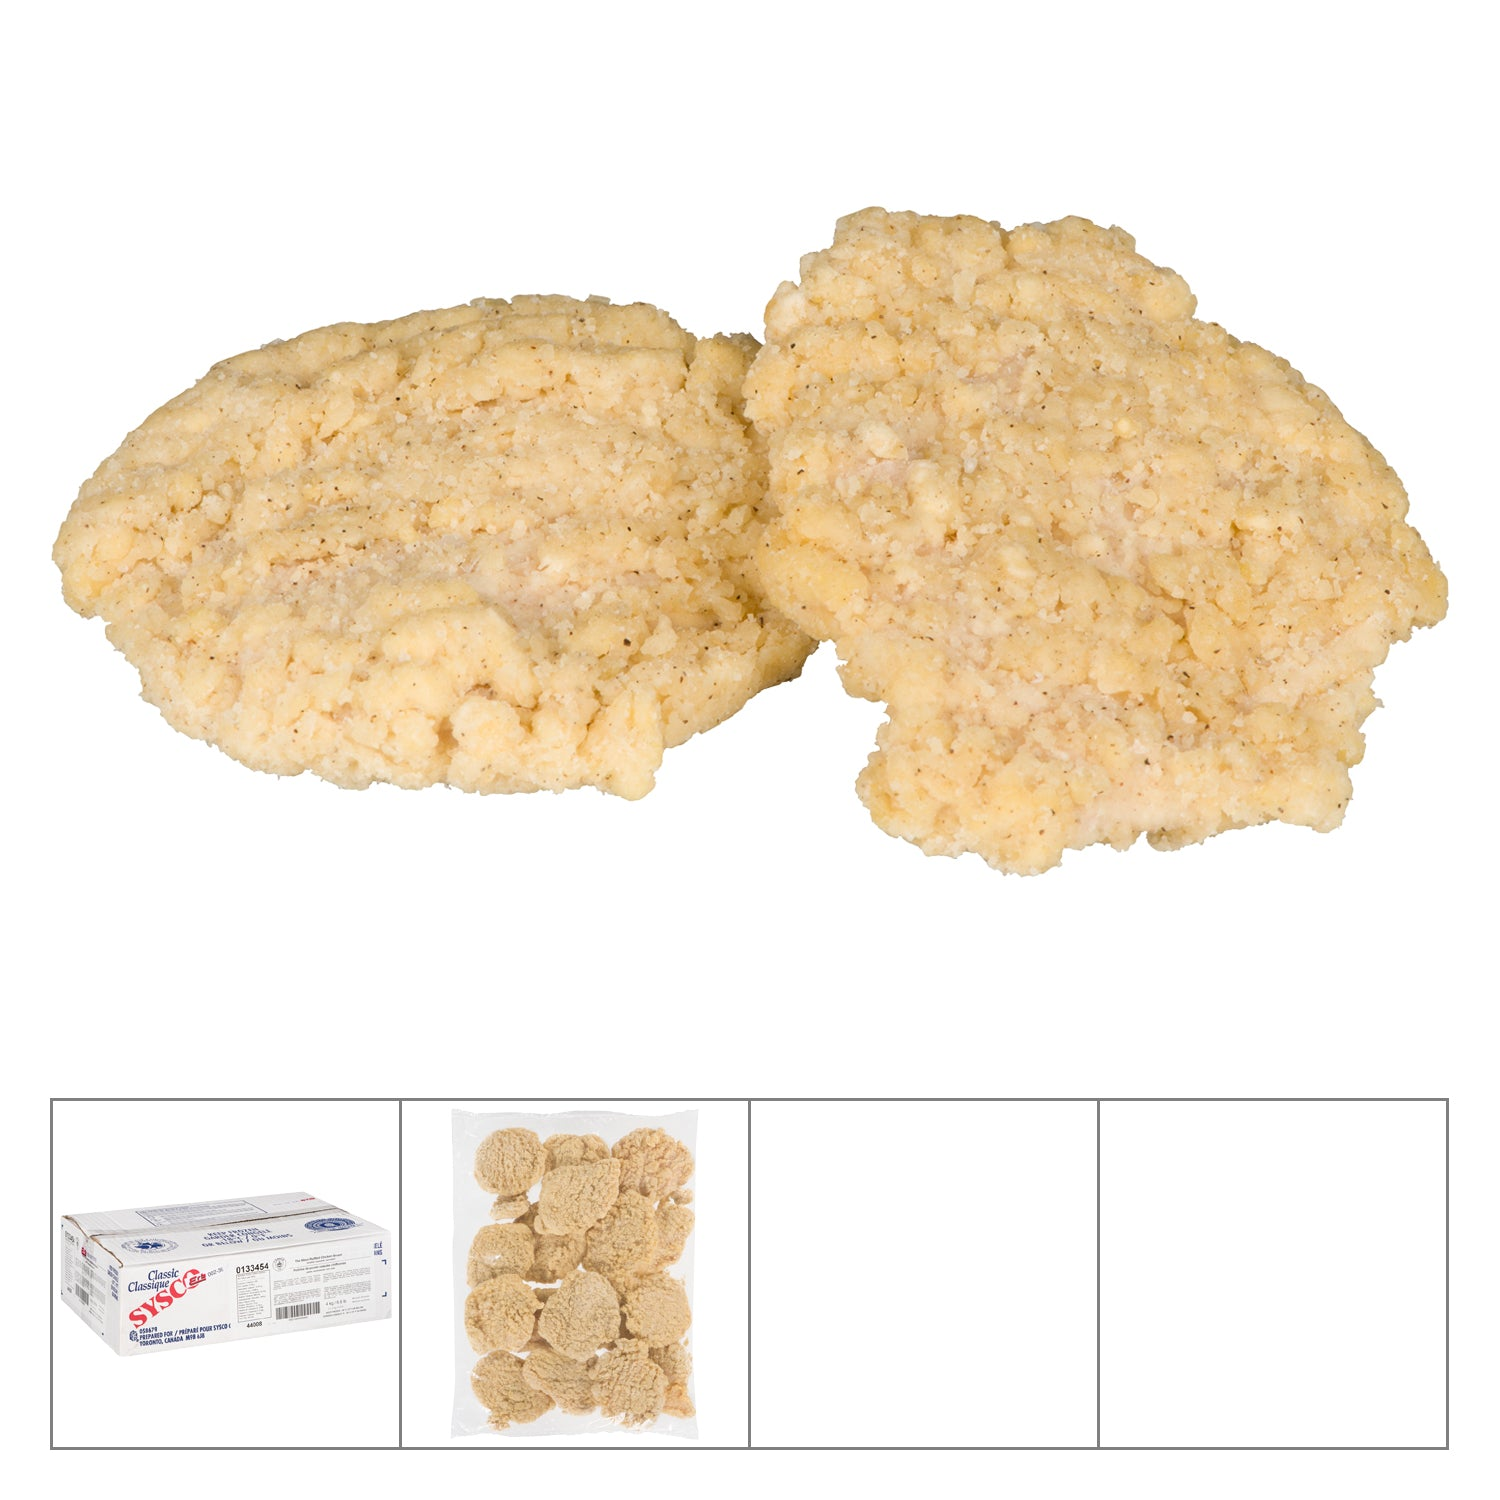 Sysco Classic Frozen Wave Breaded Chicken Breast 4.5 oz - 2 kg - 2 Pack [$17.60/kg]